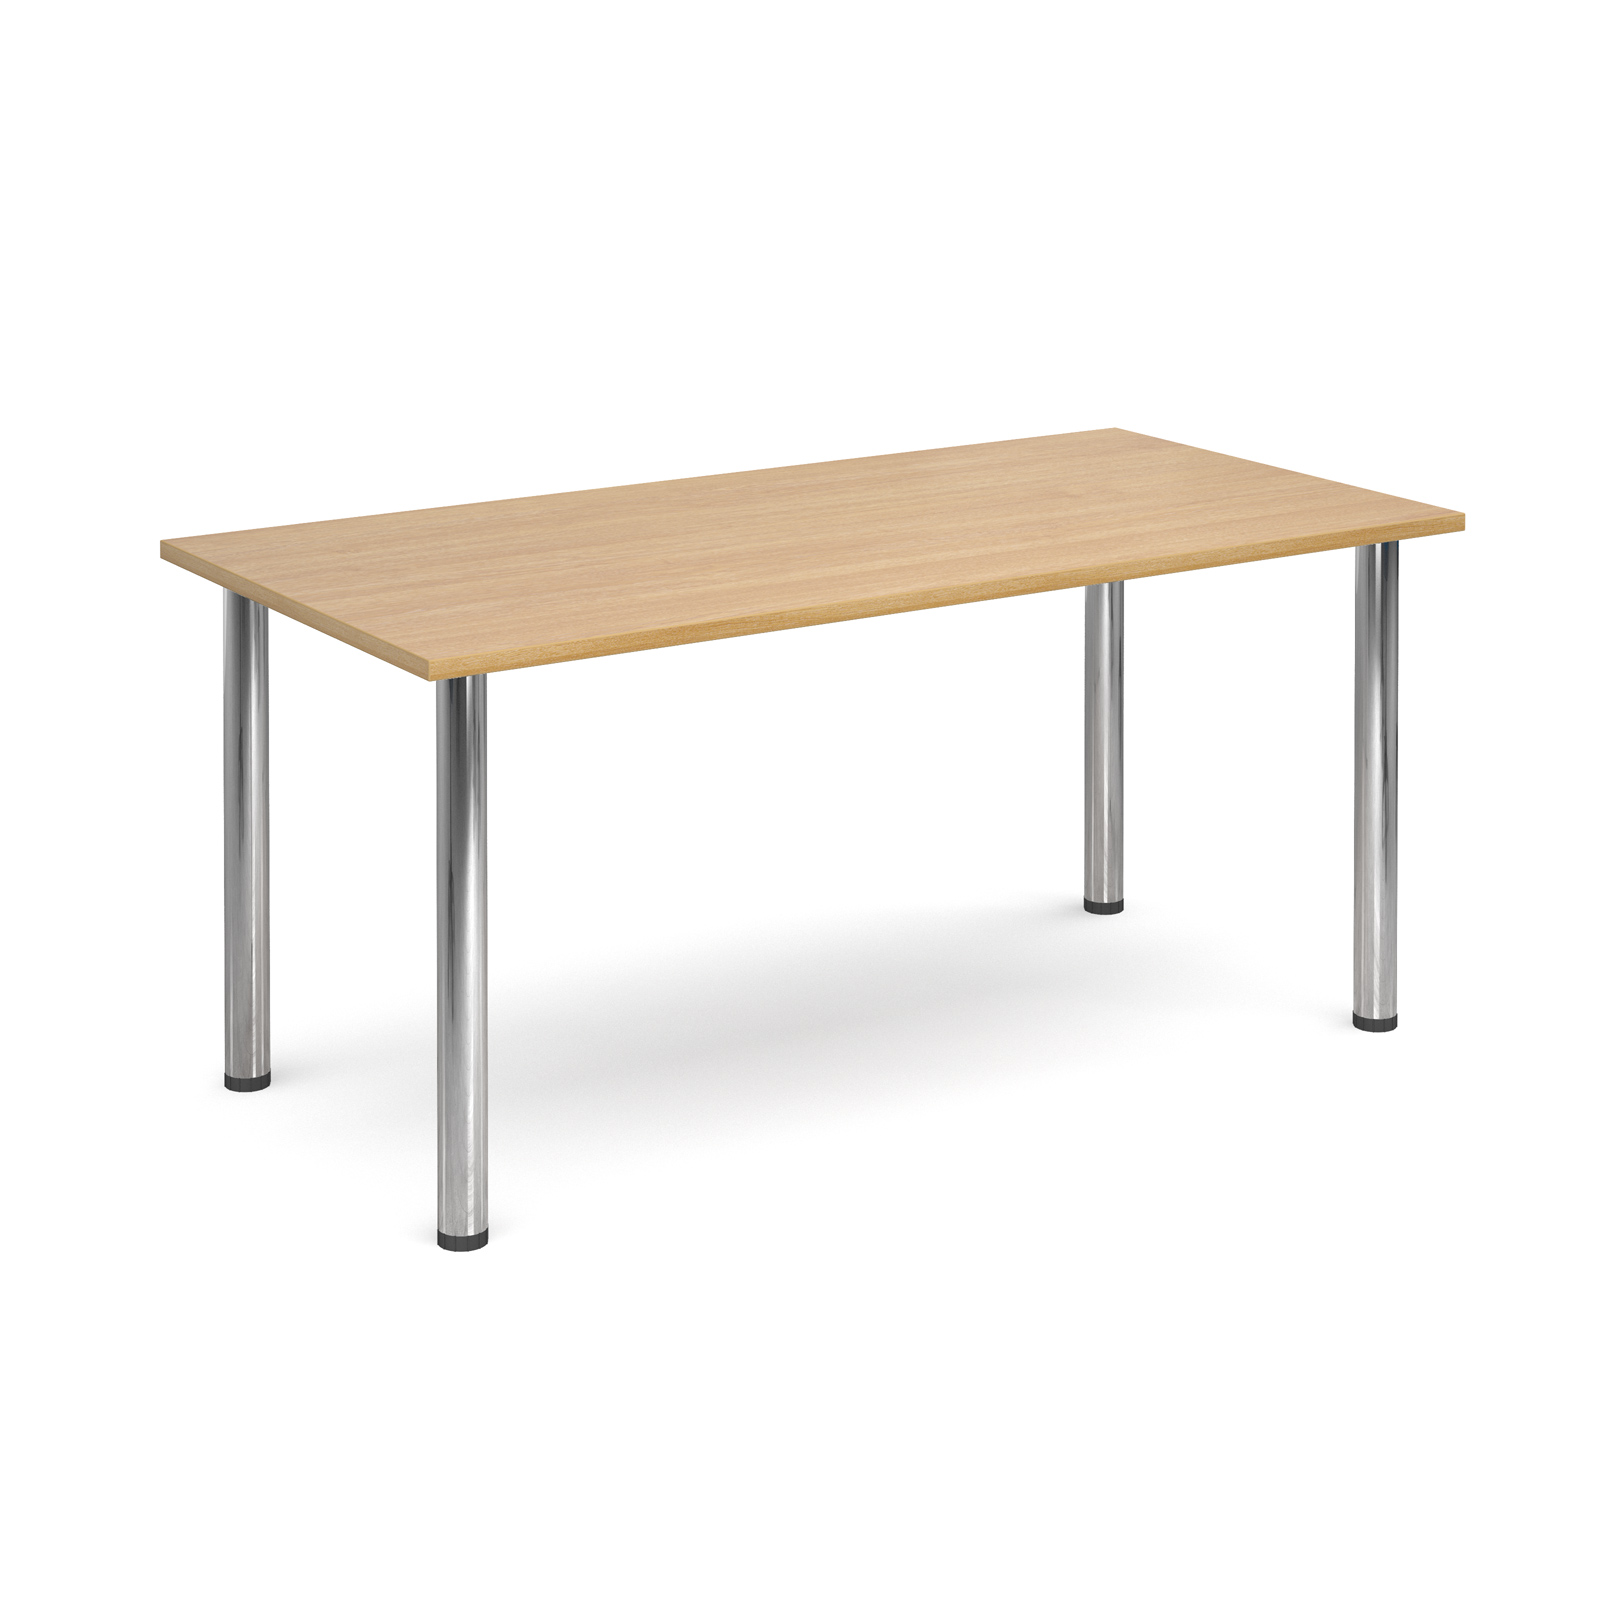 1600 Flexi table Chrome radial Legs-Oak